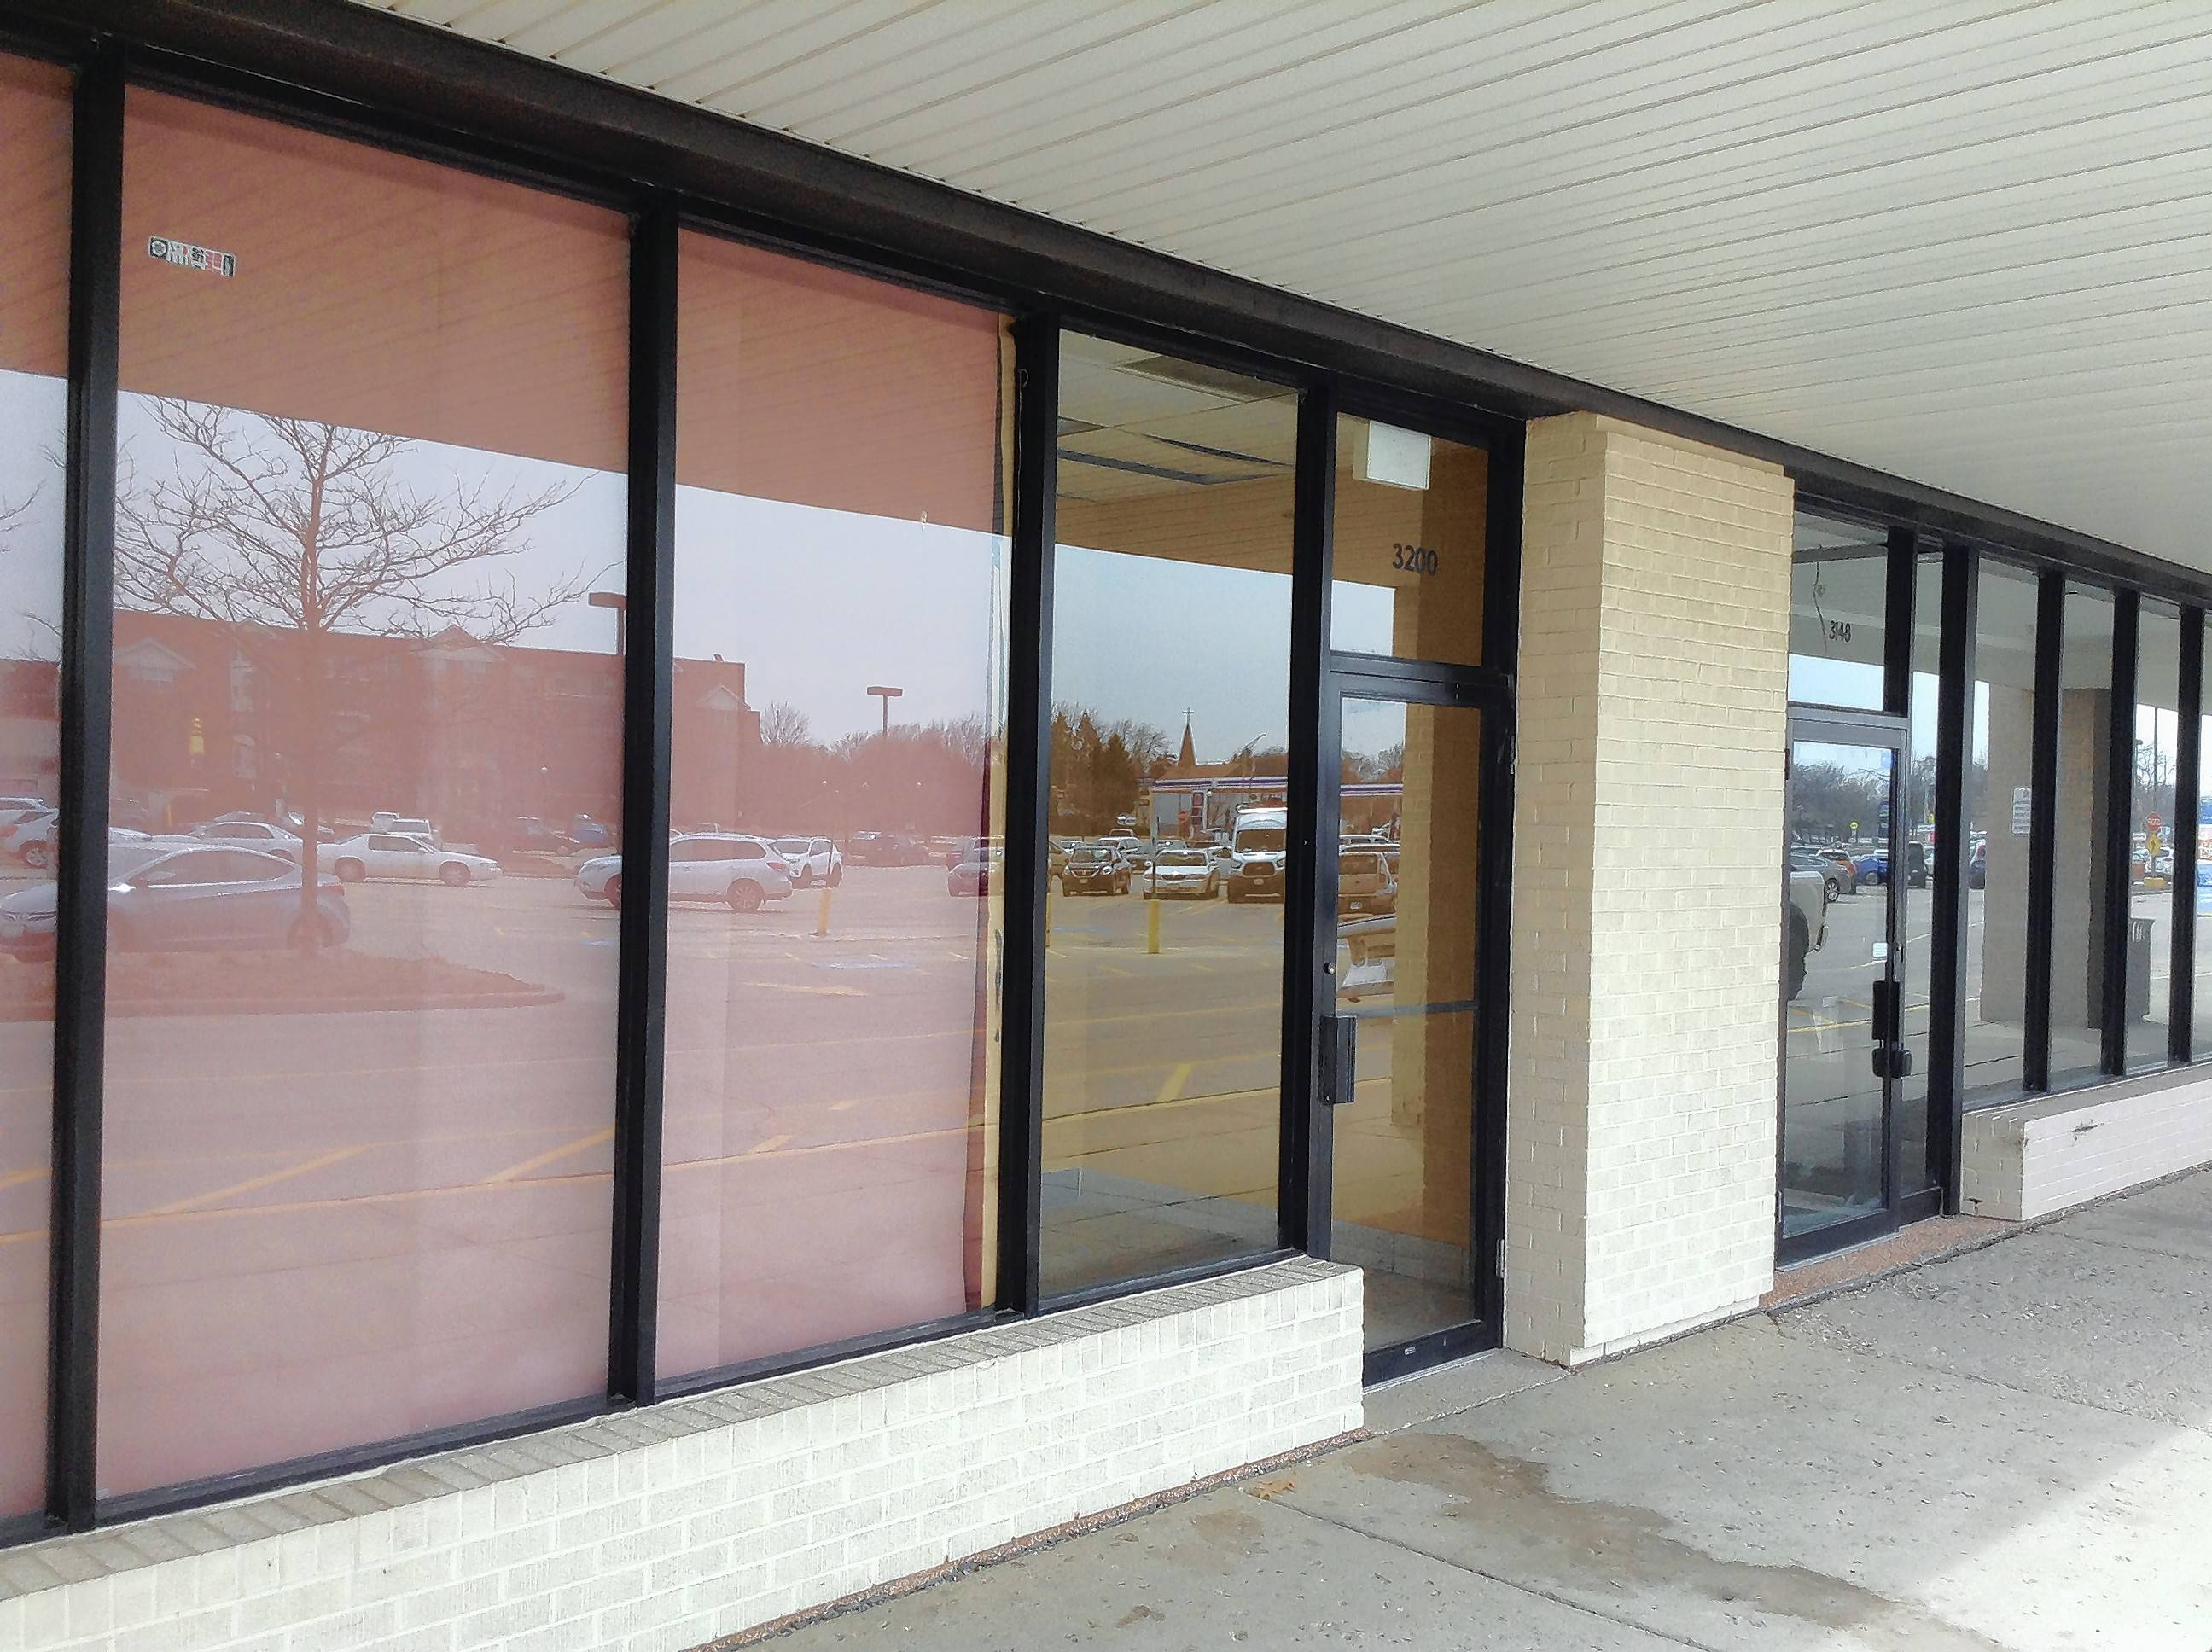 New sports bar aims to be place for Rolling Meadows locals